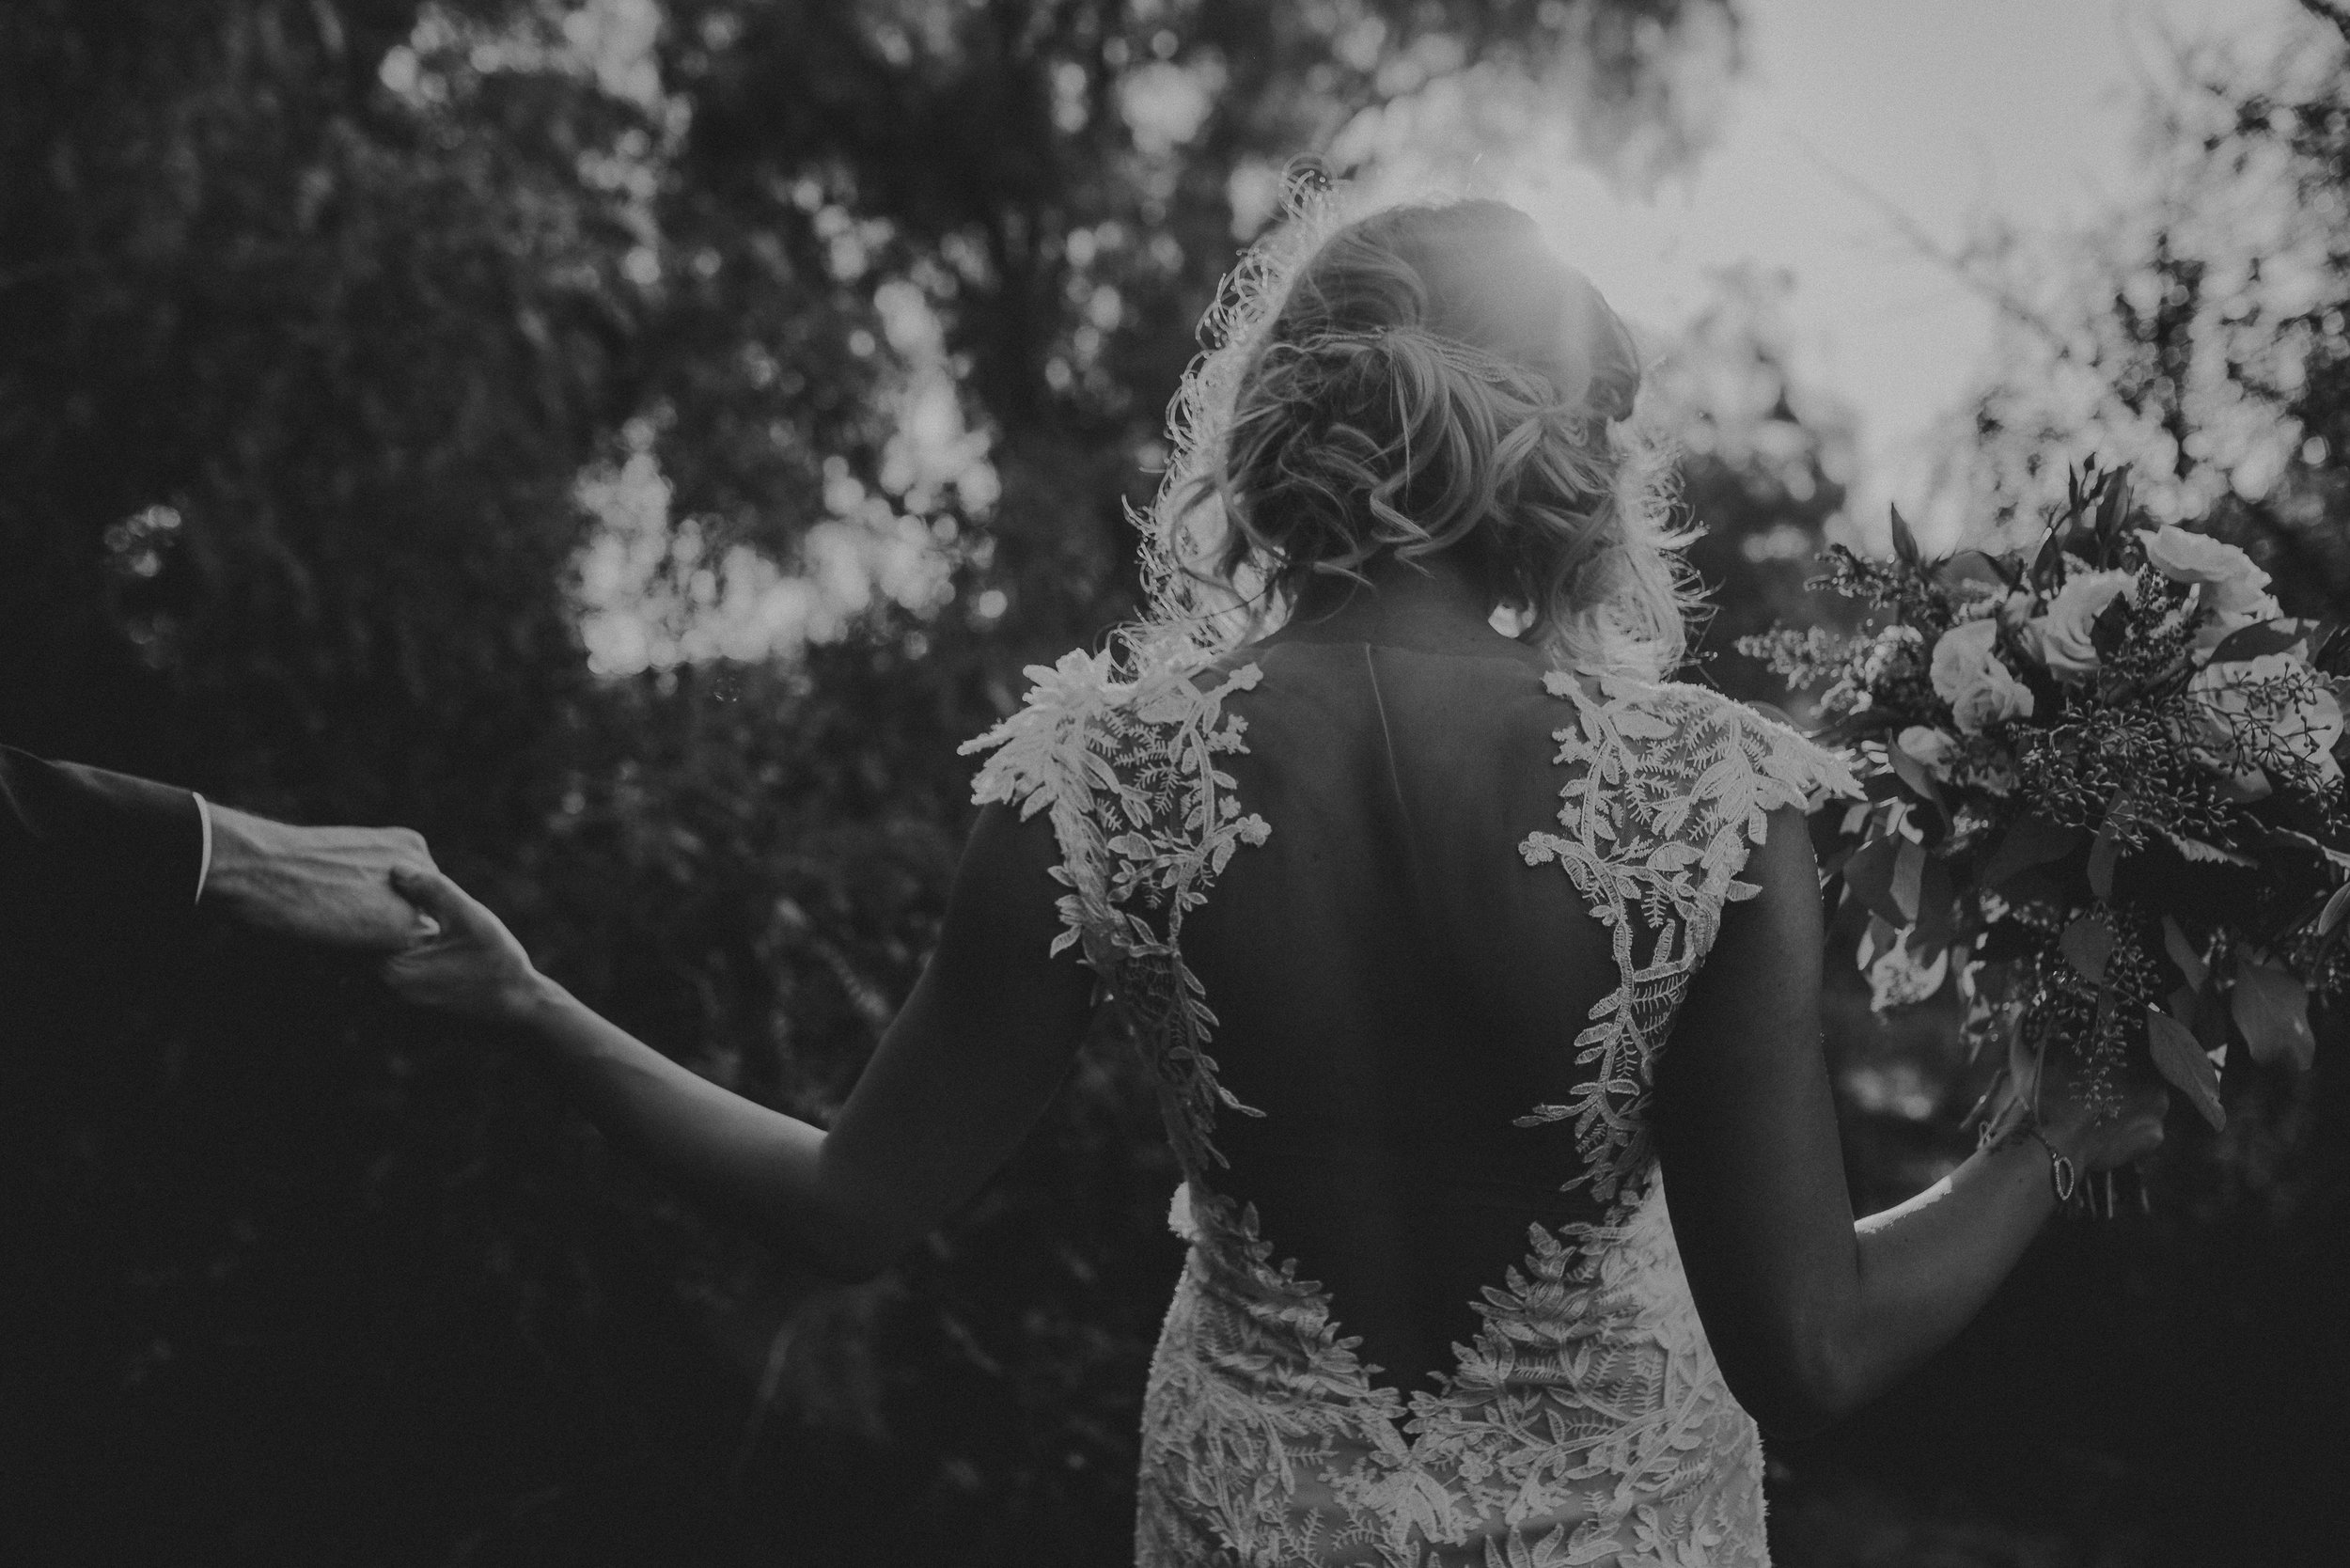 Isaiah + Taylor Photography - Los Angeles Wedding Photographer - Open Air Resort Wedding-82.jpg